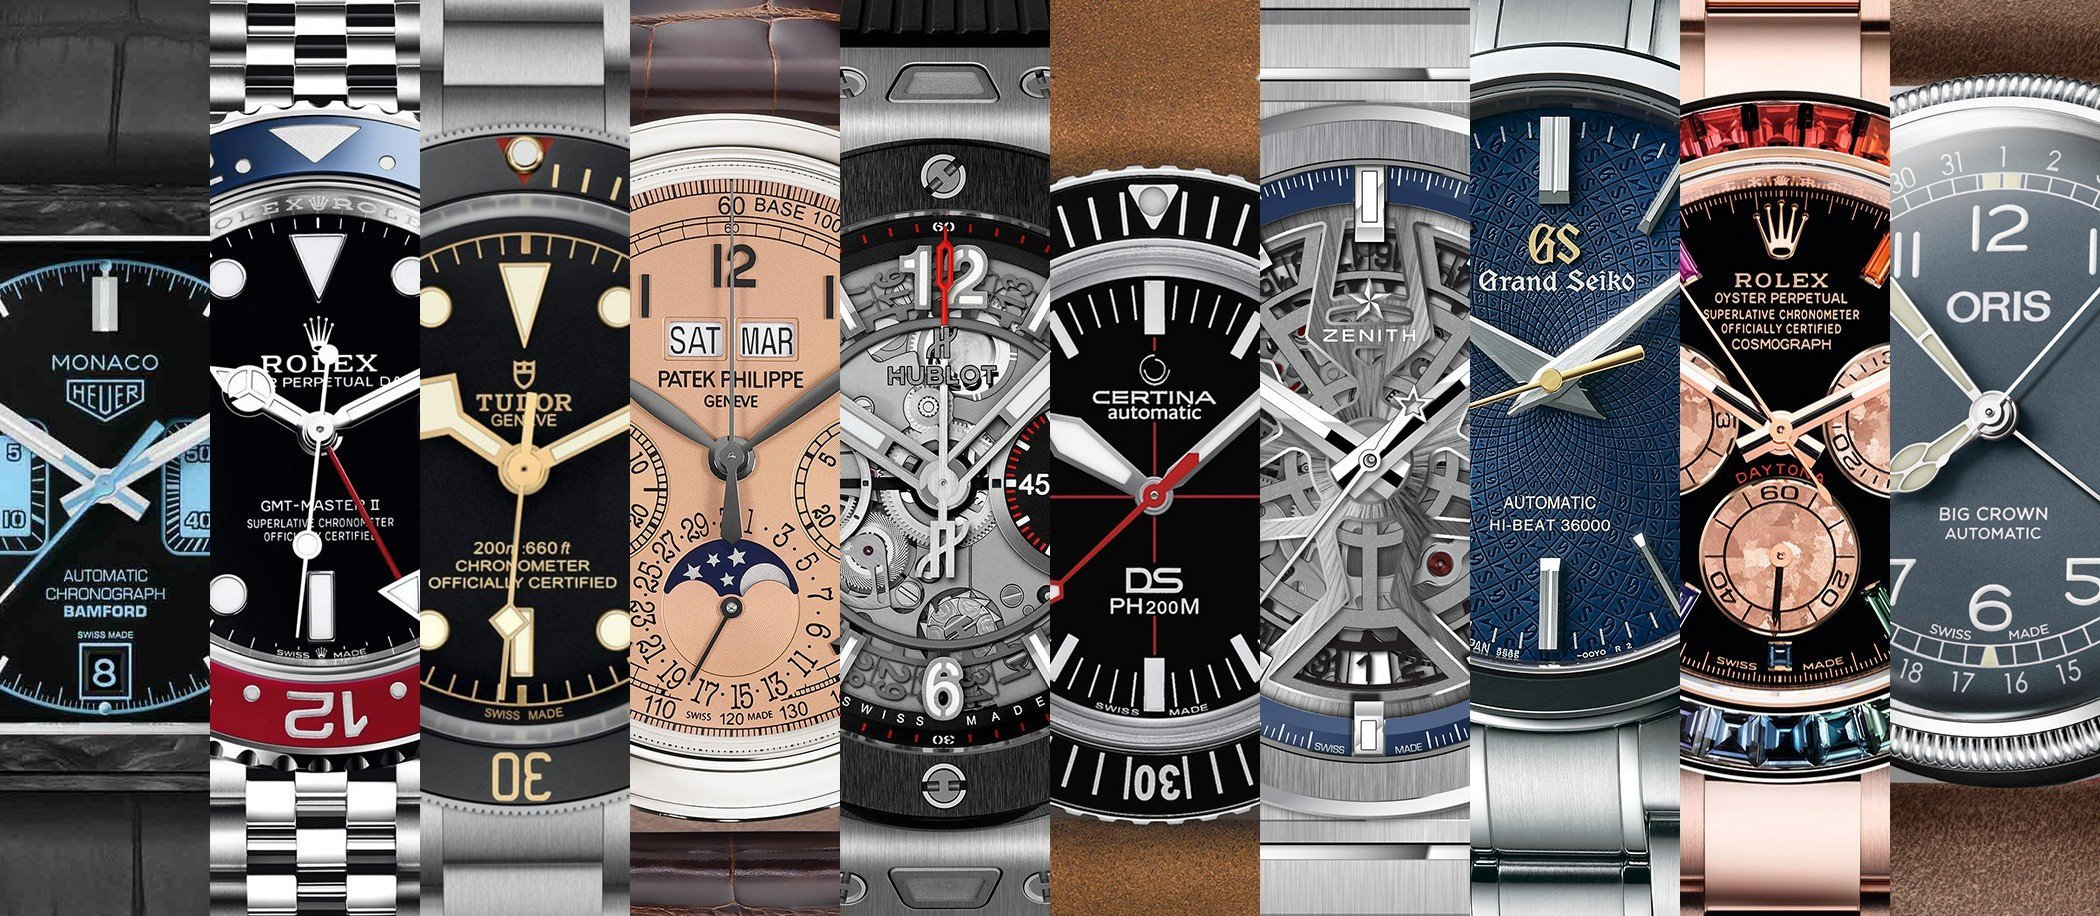 BaselWorld 2018 - TOP 10